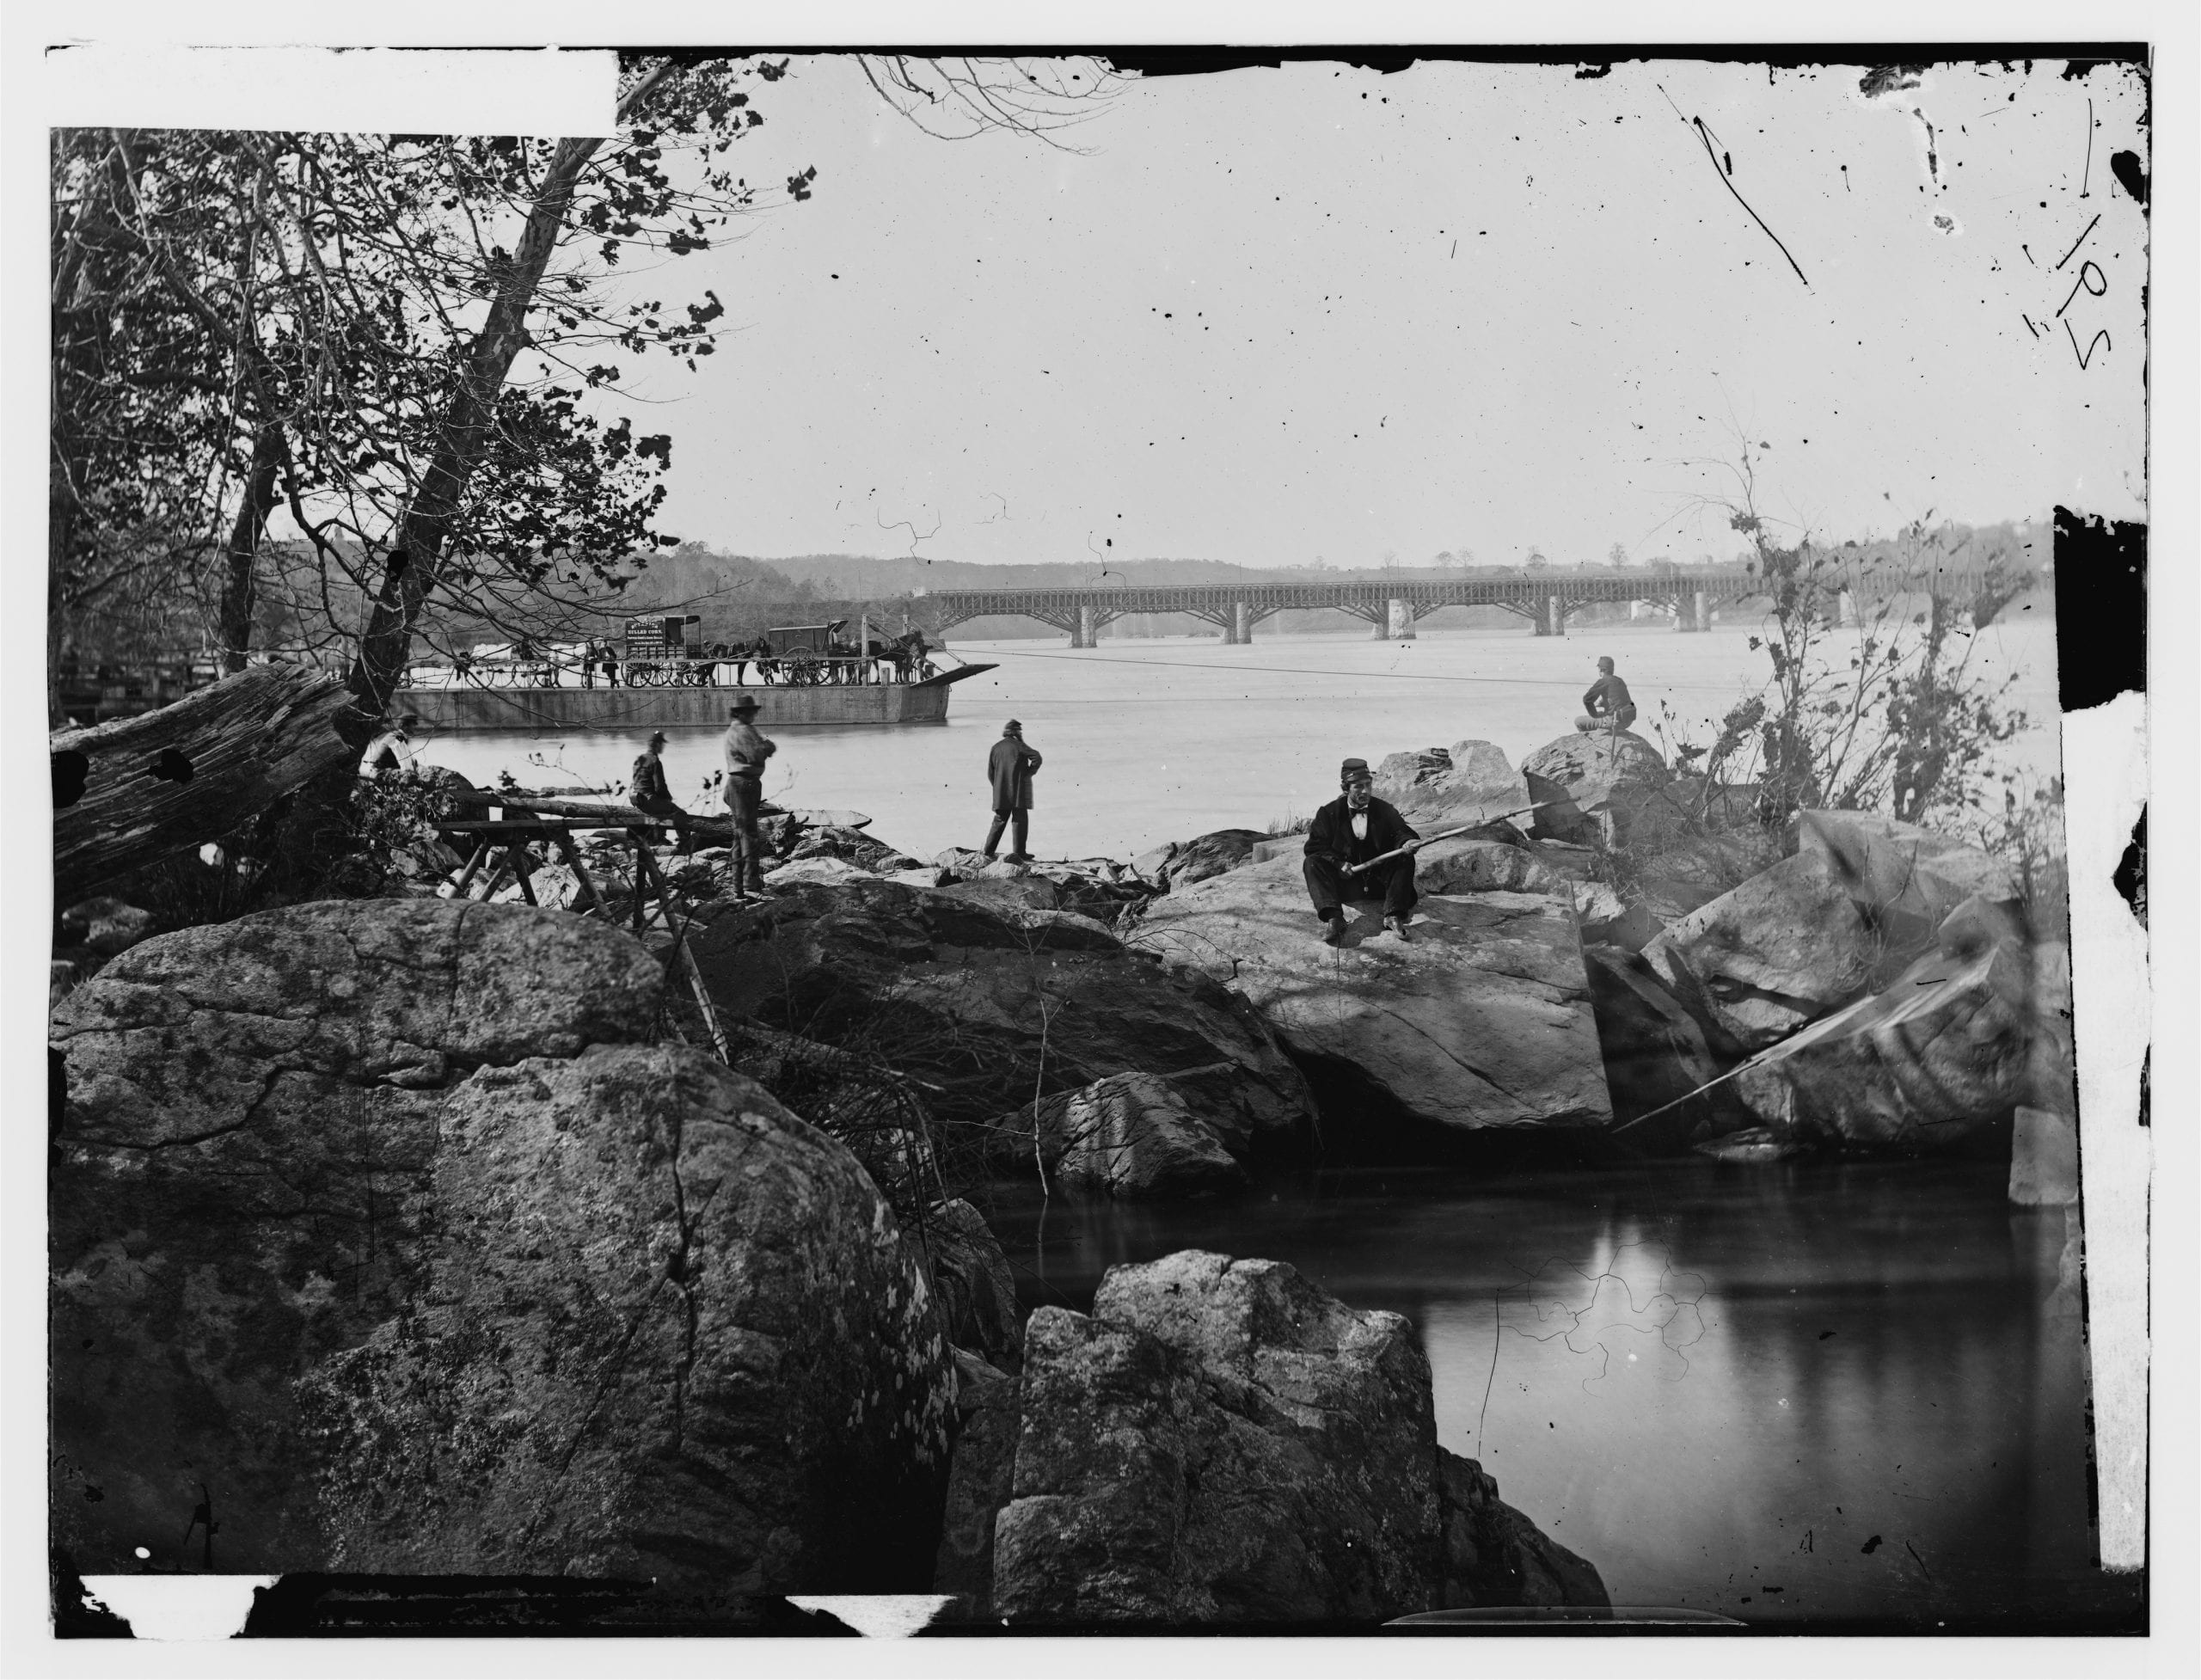 Civil War Photo of Georgetown Ferry Boat